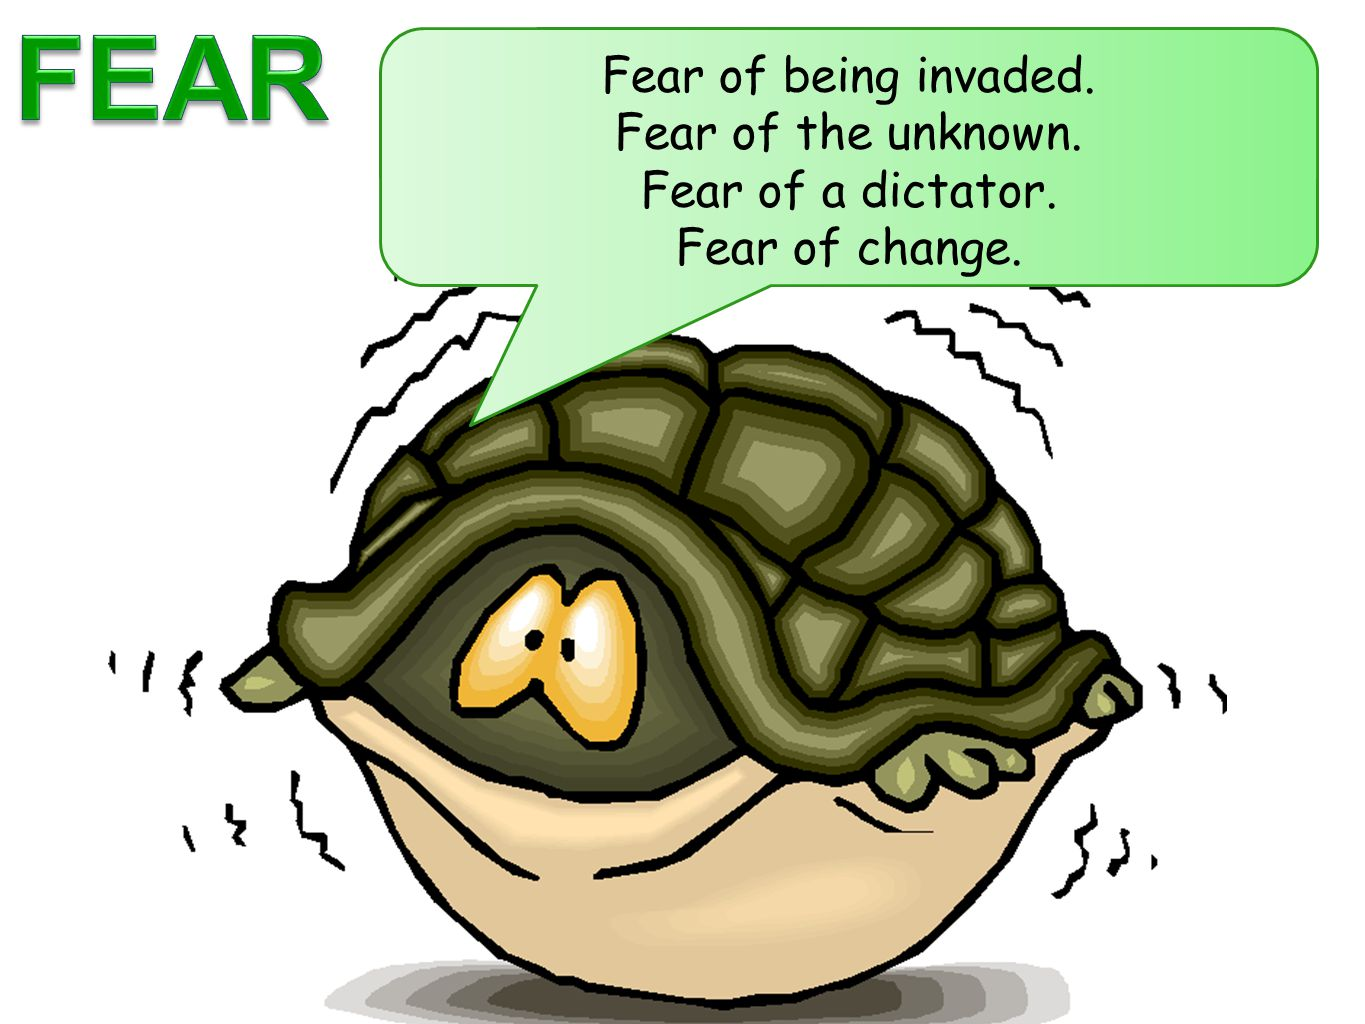 FEAR Fear of being invaded. Fear of the unknown. Fear of a dictator.